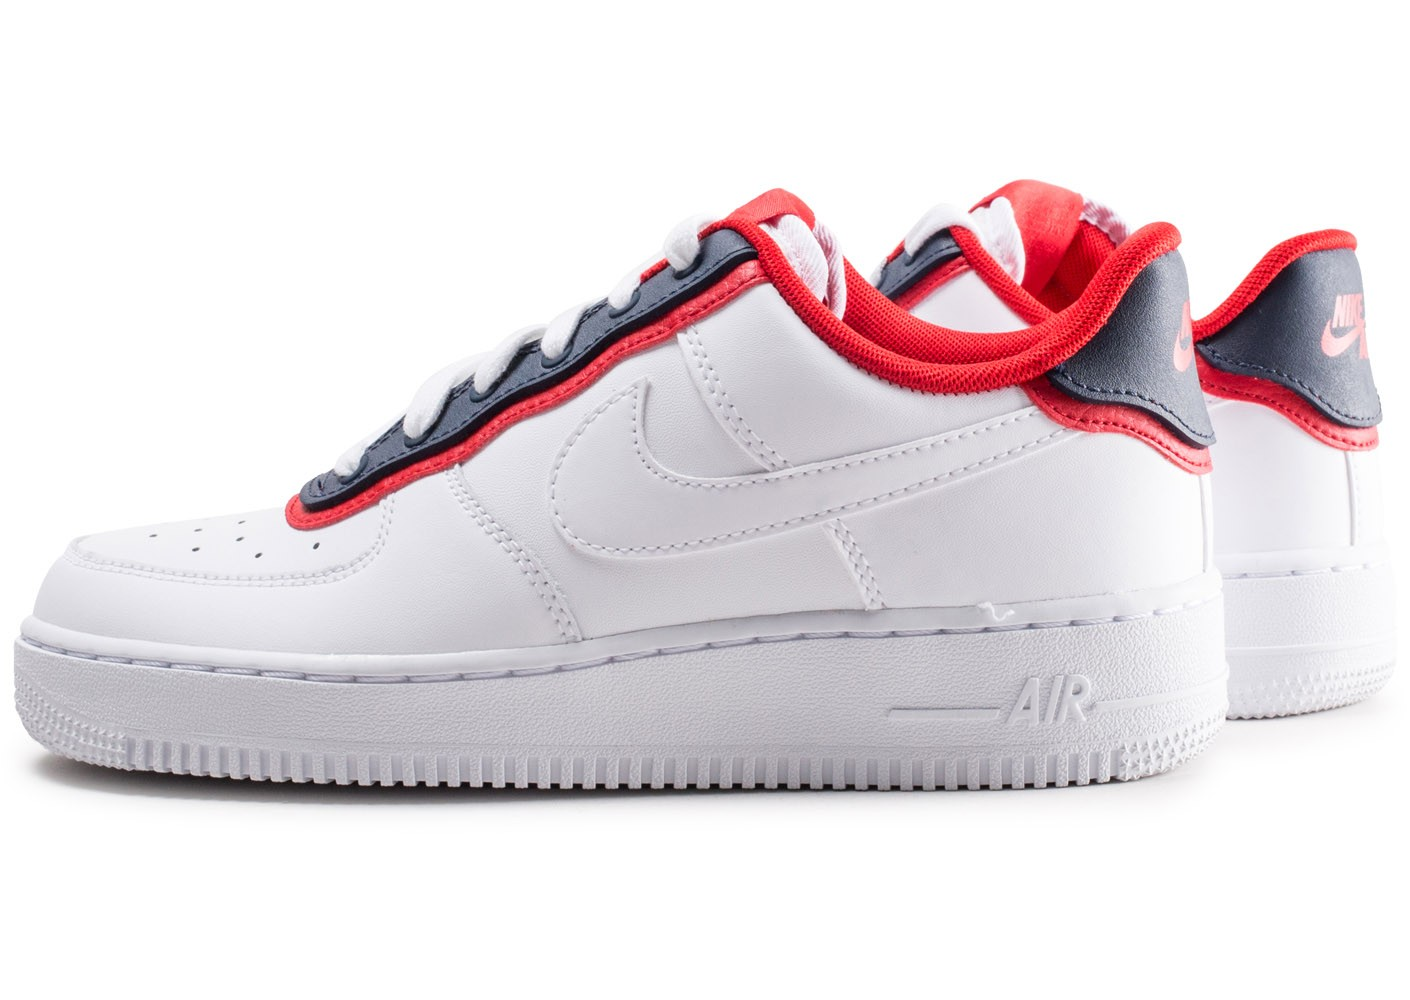 air force 1 rouge et blanche homme